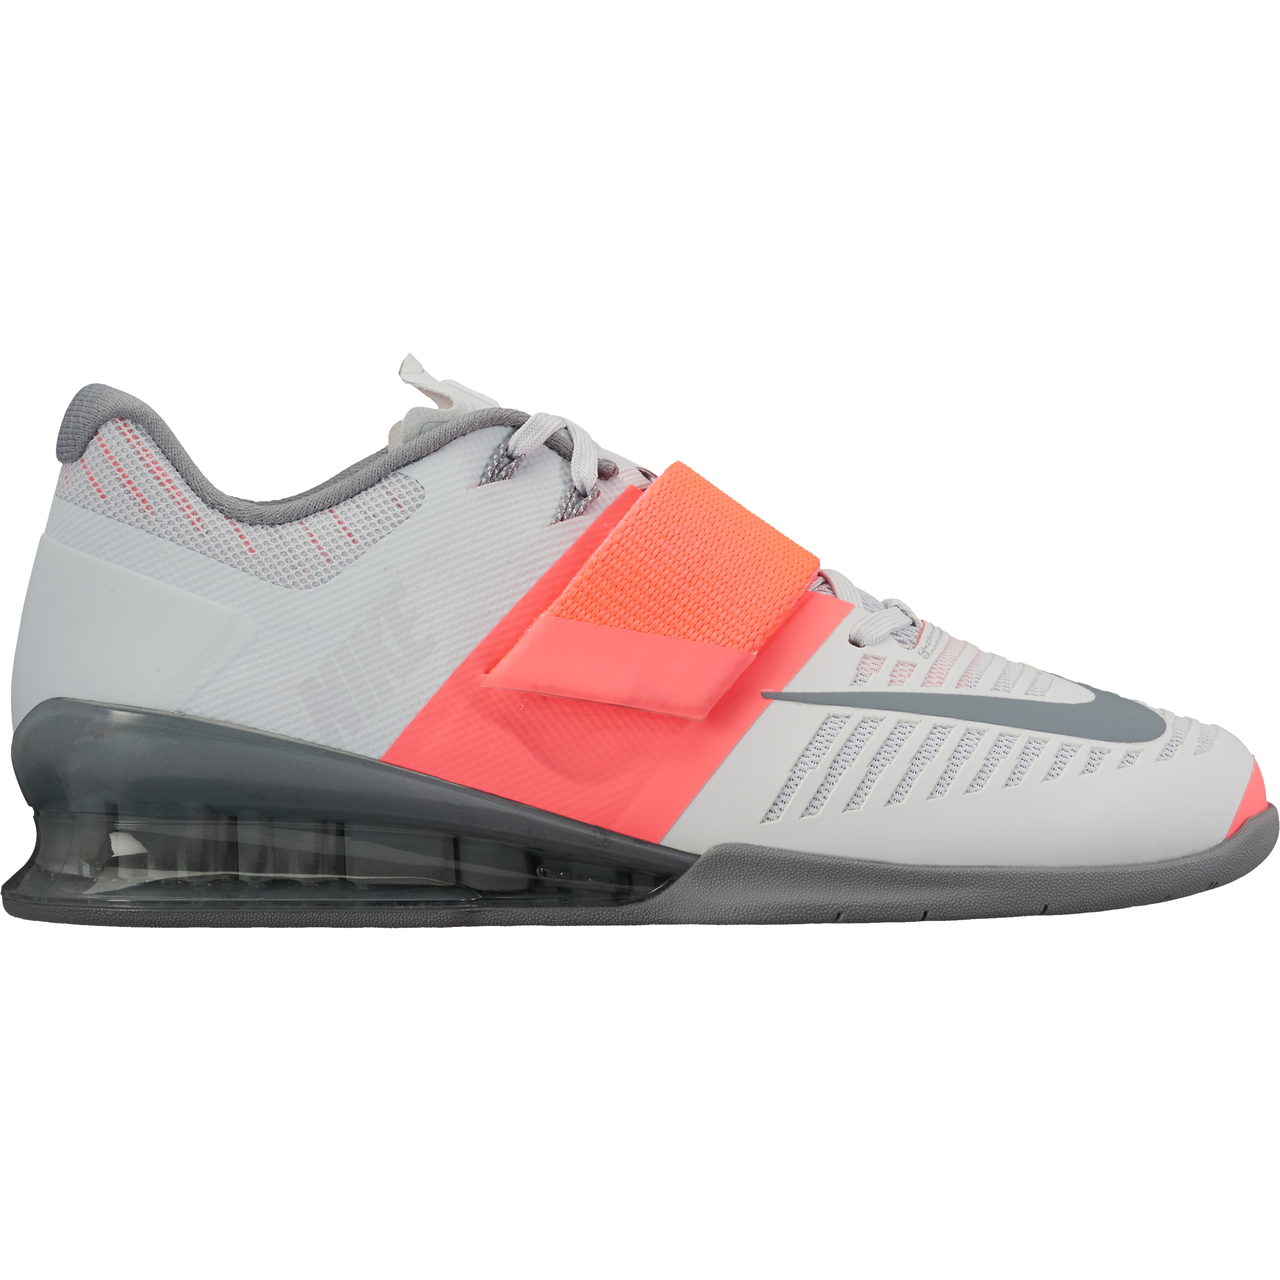 info for 3c98d dbc7b Nike Women s Romaleos 3 Weightlifting Shoes - Pure Plat Cool Grey HT Punch